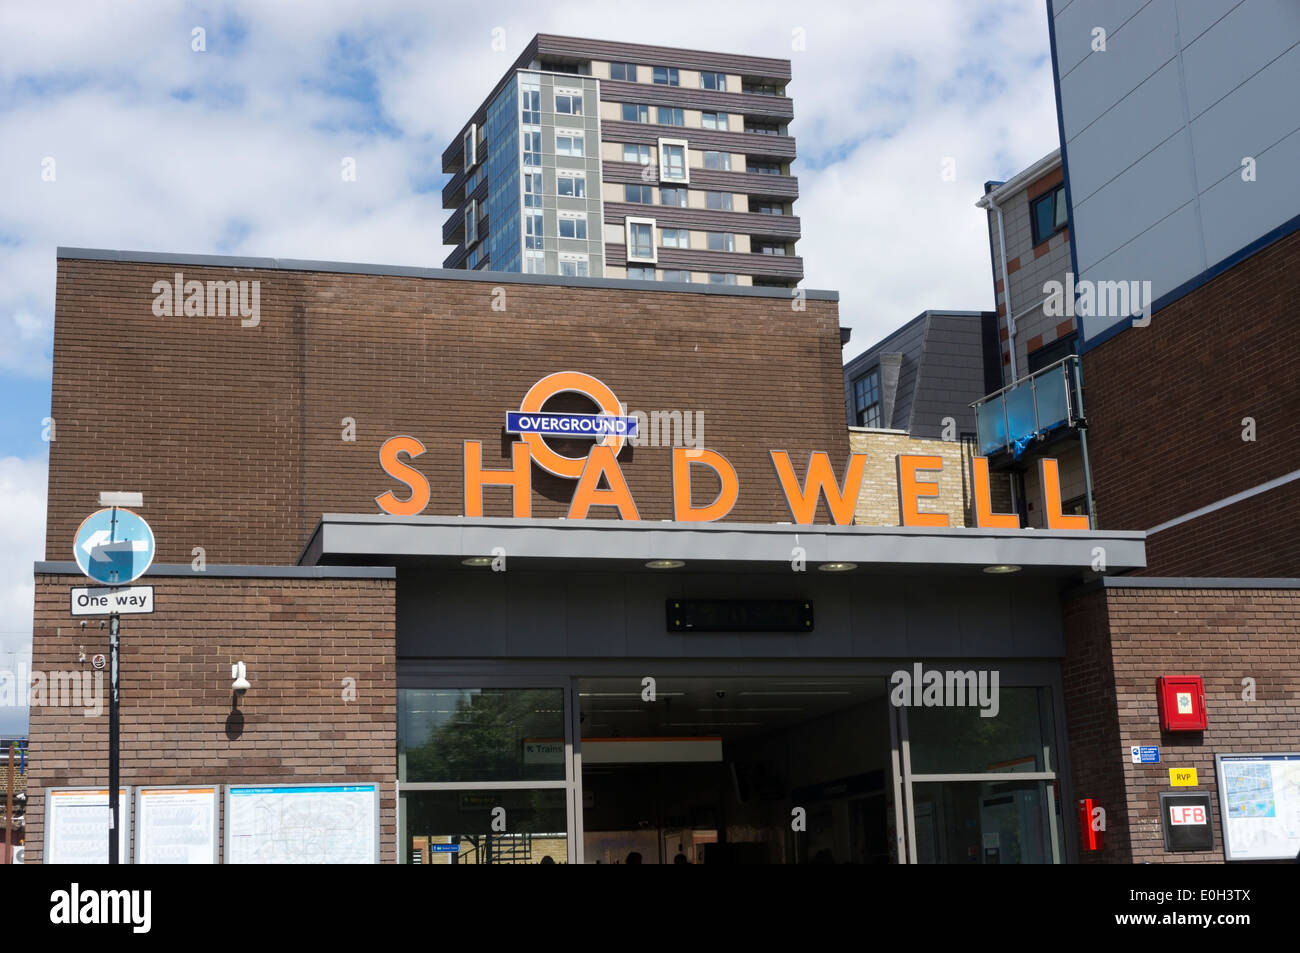 Shadwell station on the London Overground network. - Stock Image